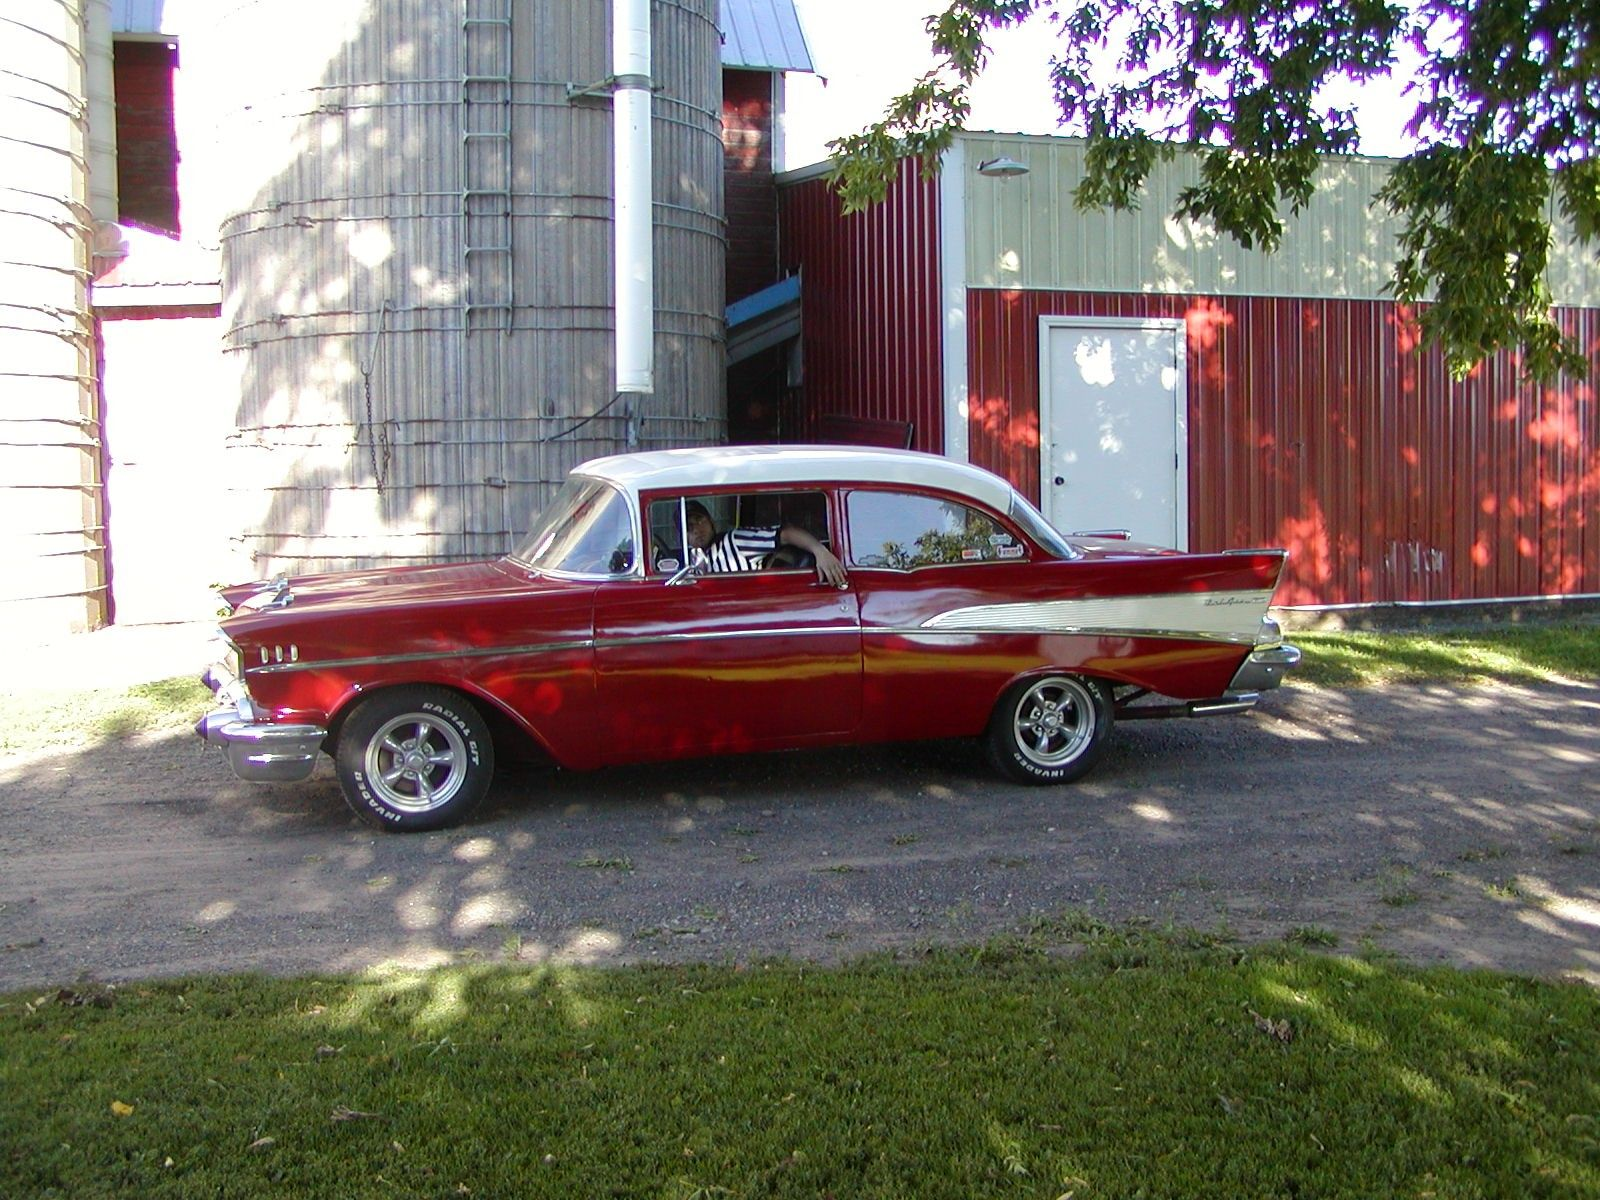 1956 bel air for sale submited images - 1957 Chevrolet Bel Air Picture Exterior